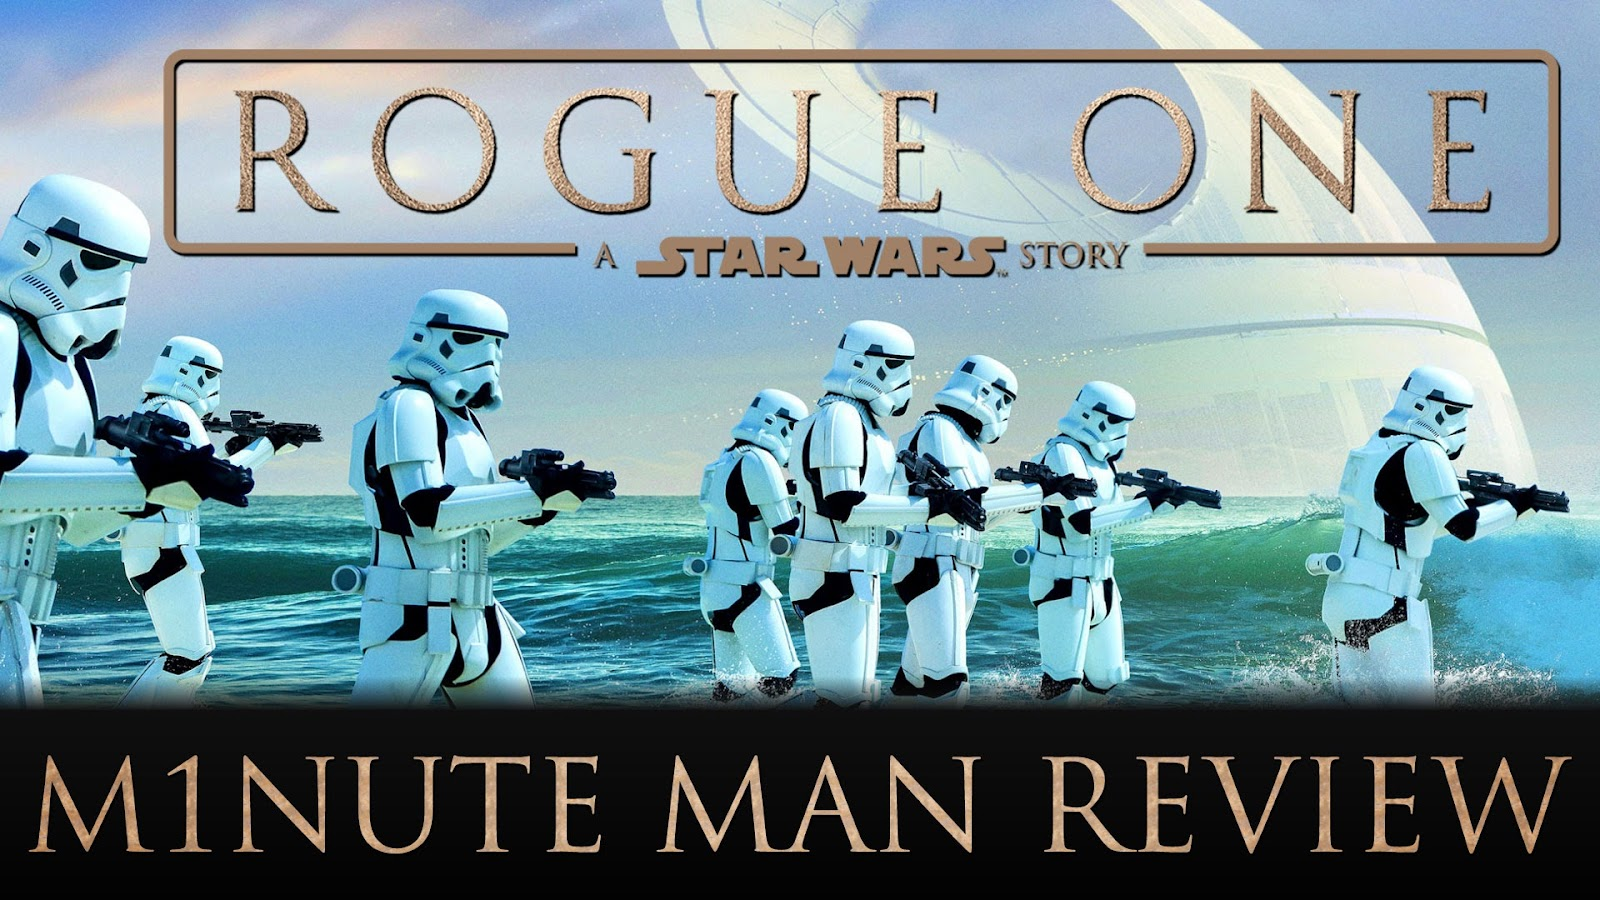 movie review Rogue One: A Star Wars Story podcast